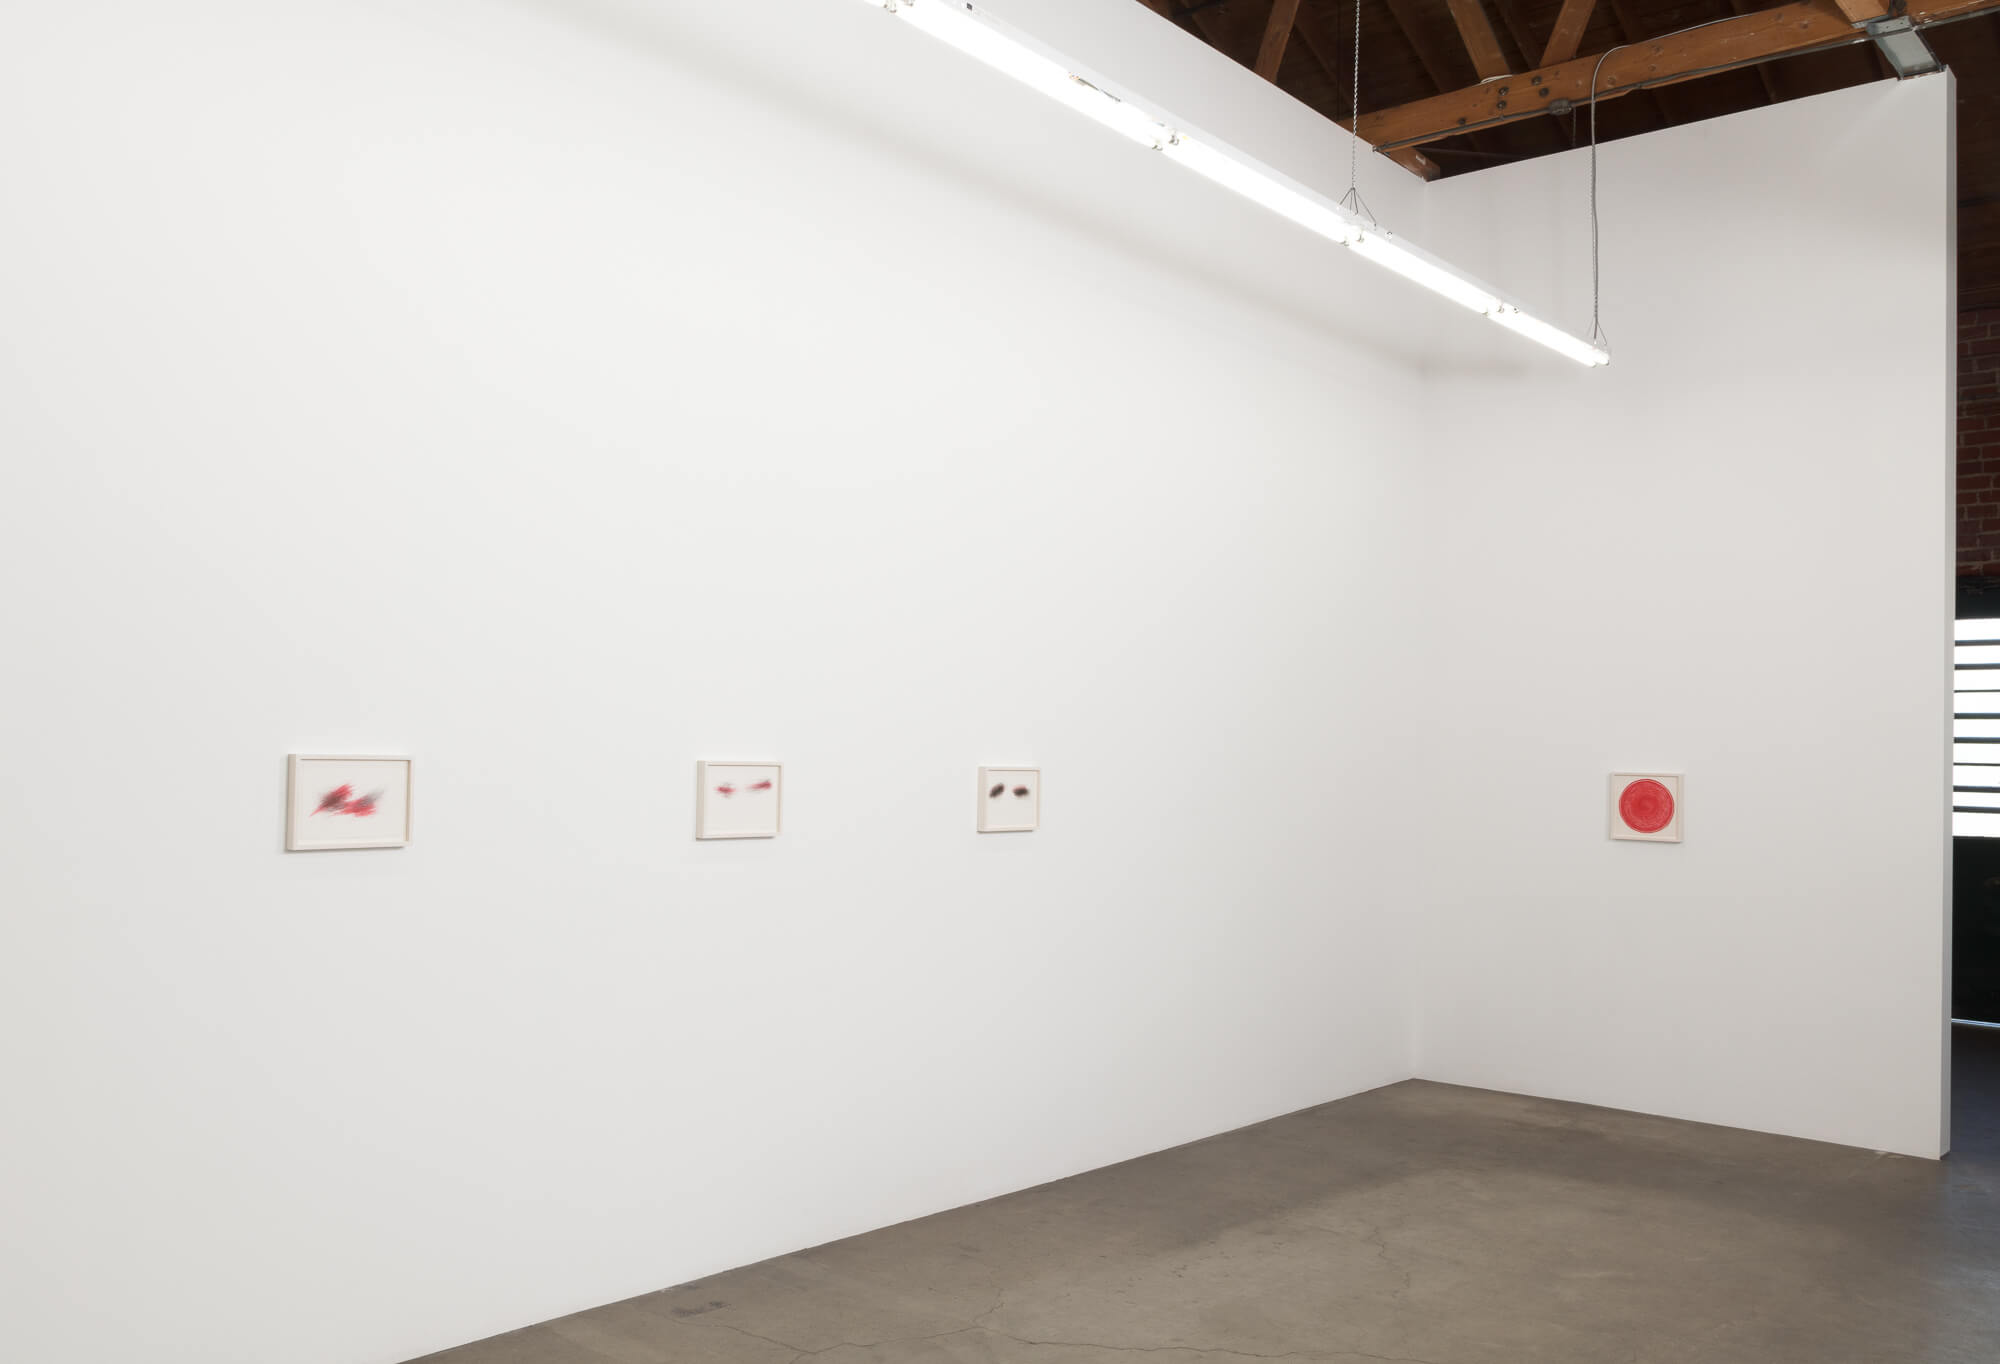 5_William Anastasi, installation view, Ghebaly Gallery